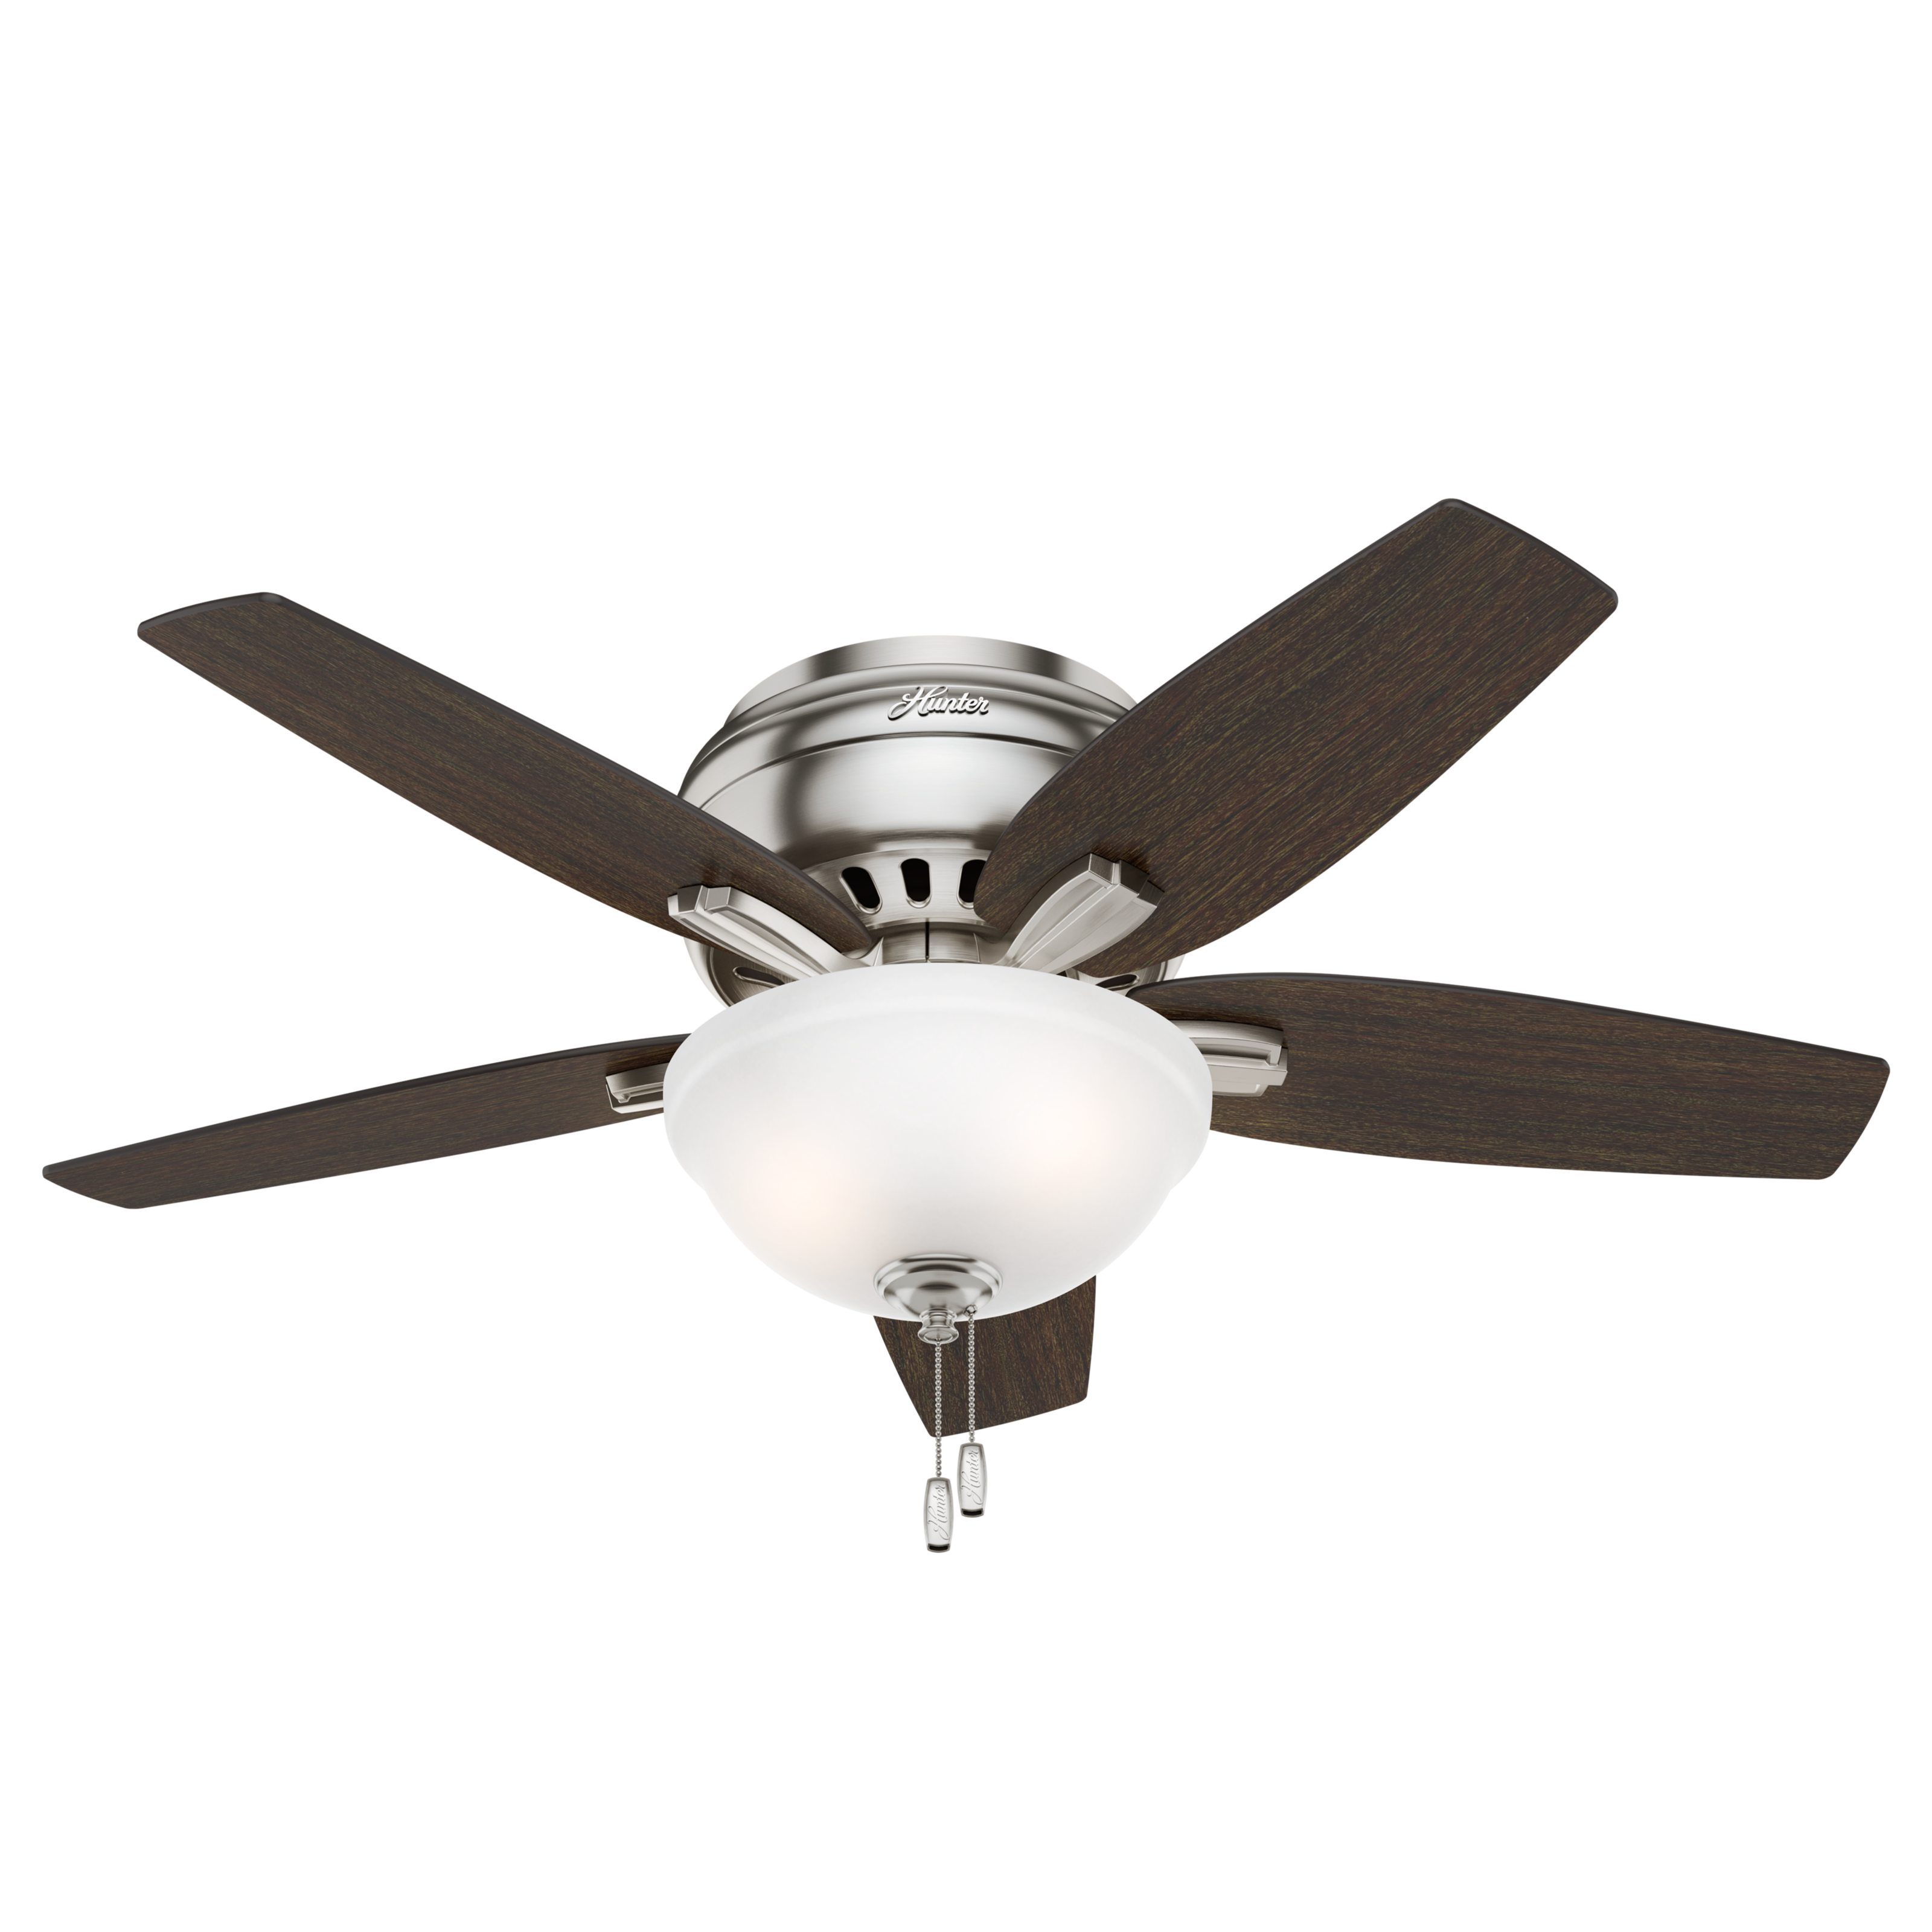 "42"" Hunter Newsome Low Profile Bowl Light Brushed Nickel Ceiling Fan with Light Kit"